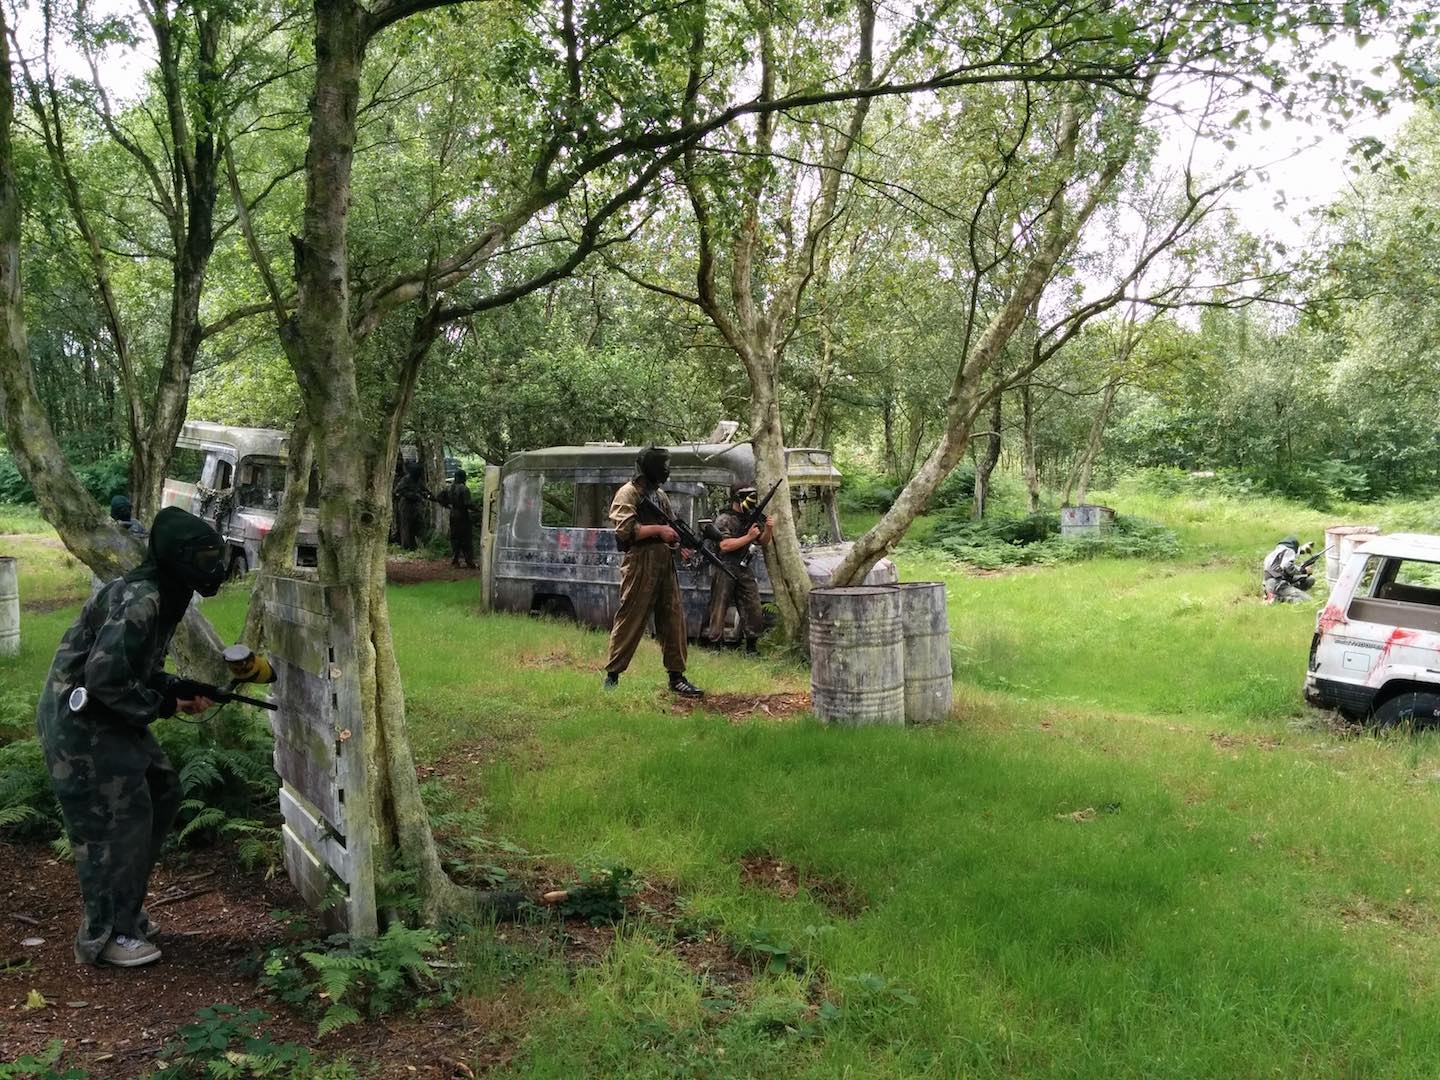 Wigan paintball